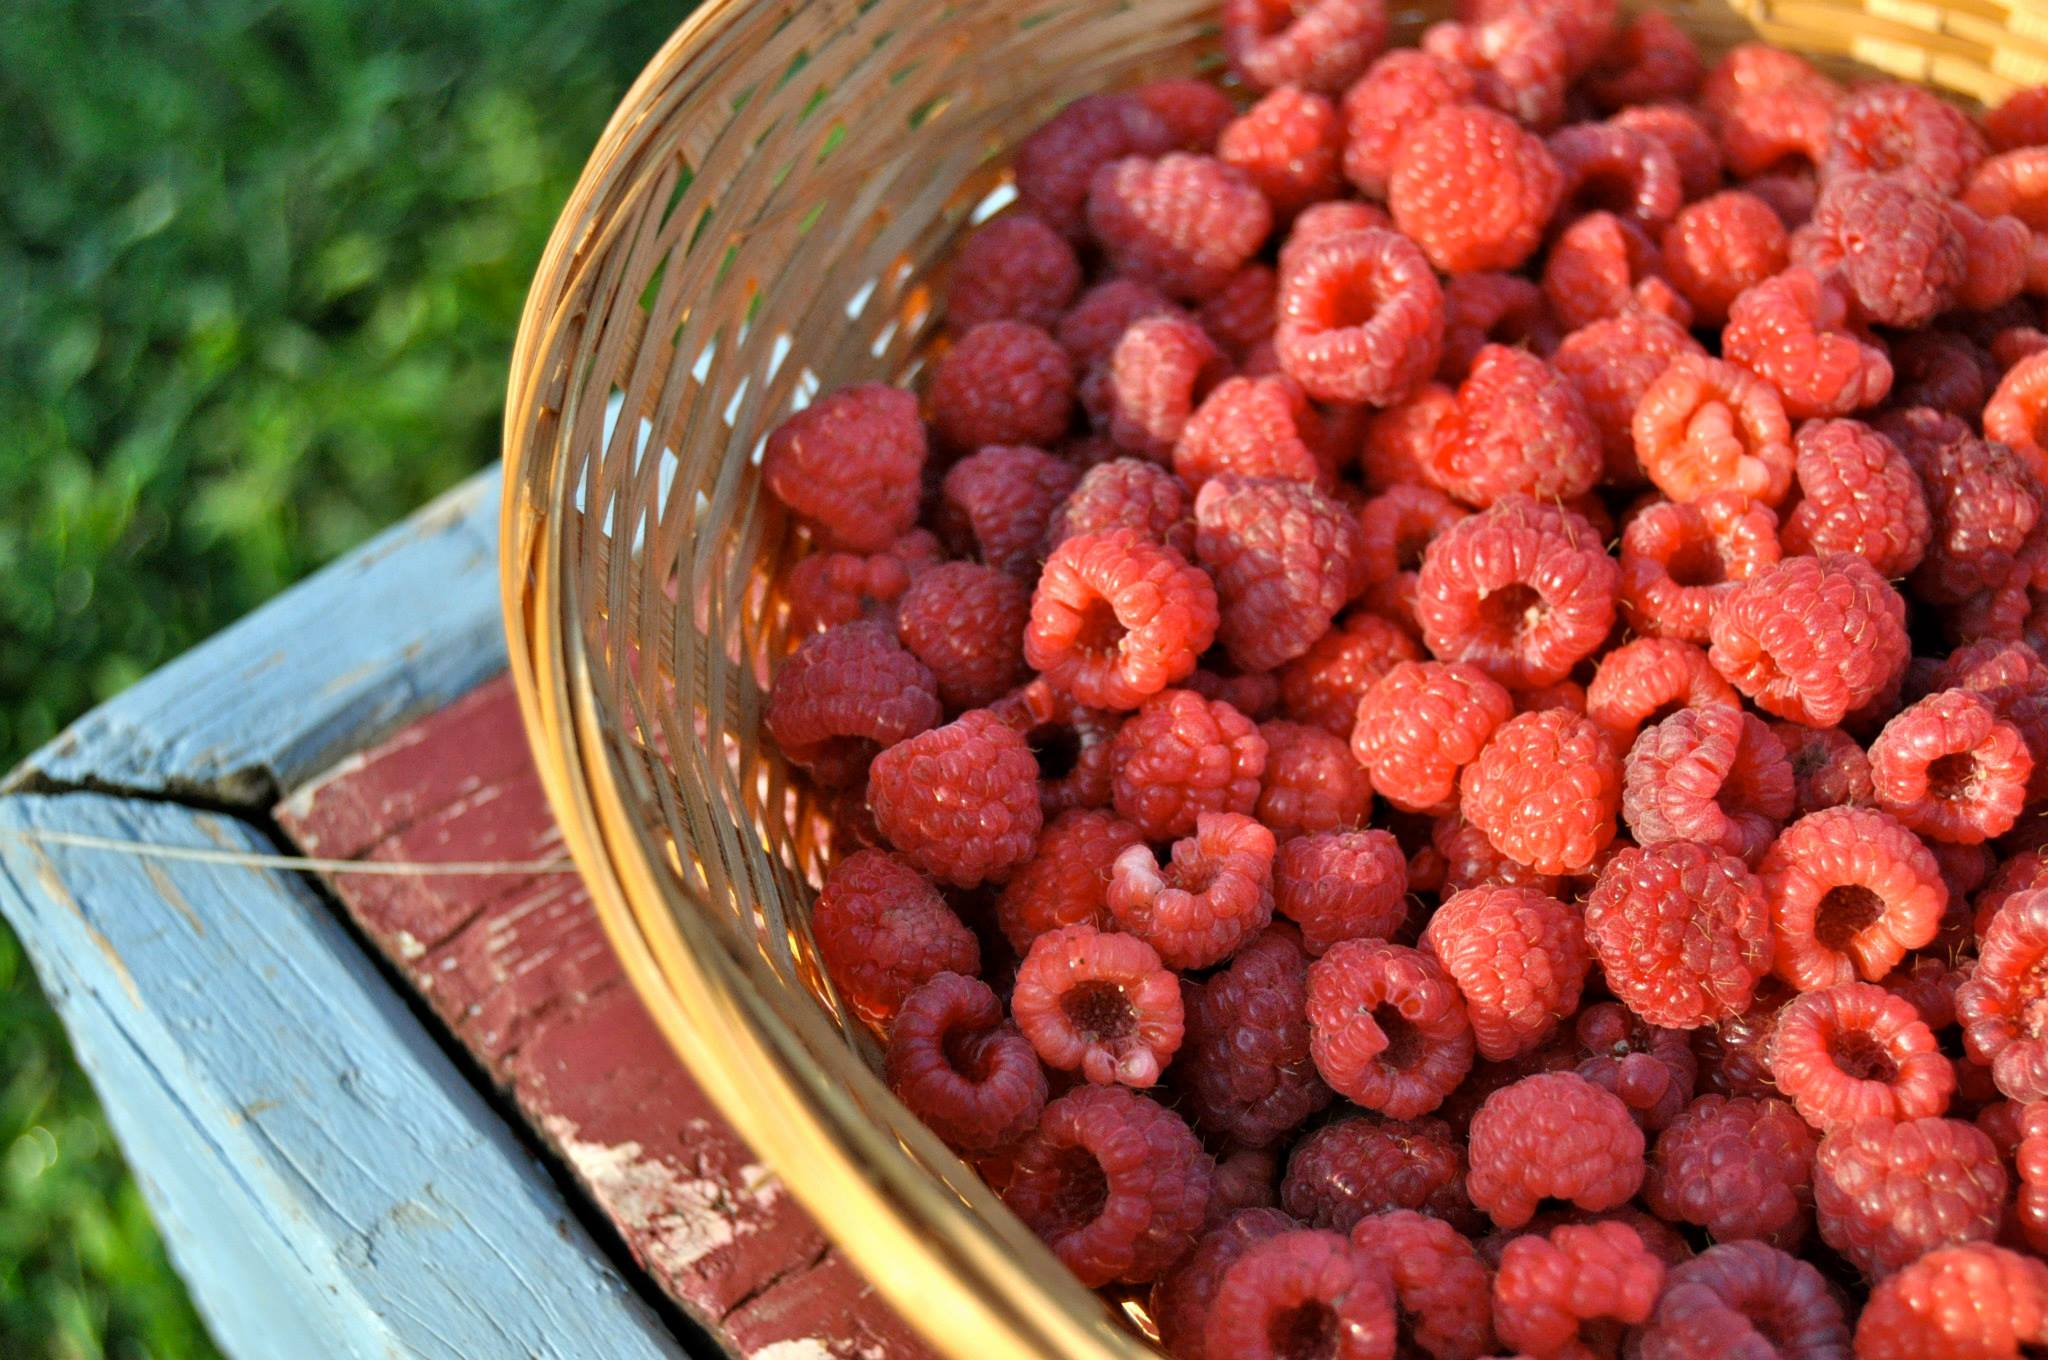 IMAGE DESCRIPTION:  A close-up of a basket of raspberries in the golden light of sunset.